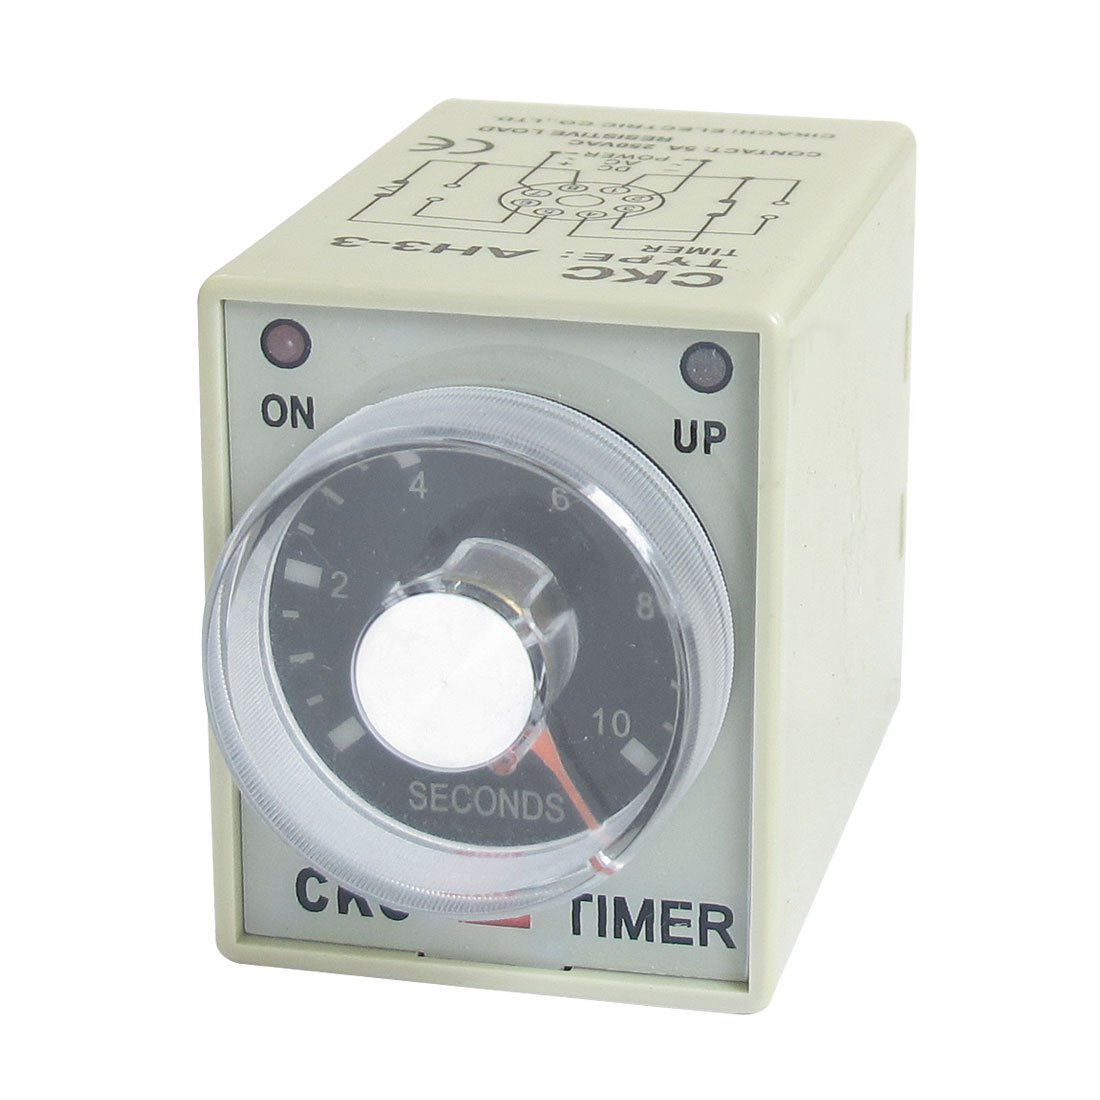 AH3-3 On/Up LED Indicator Power On Timing Relay DPDT 0-10s 10 Sec 380V AC